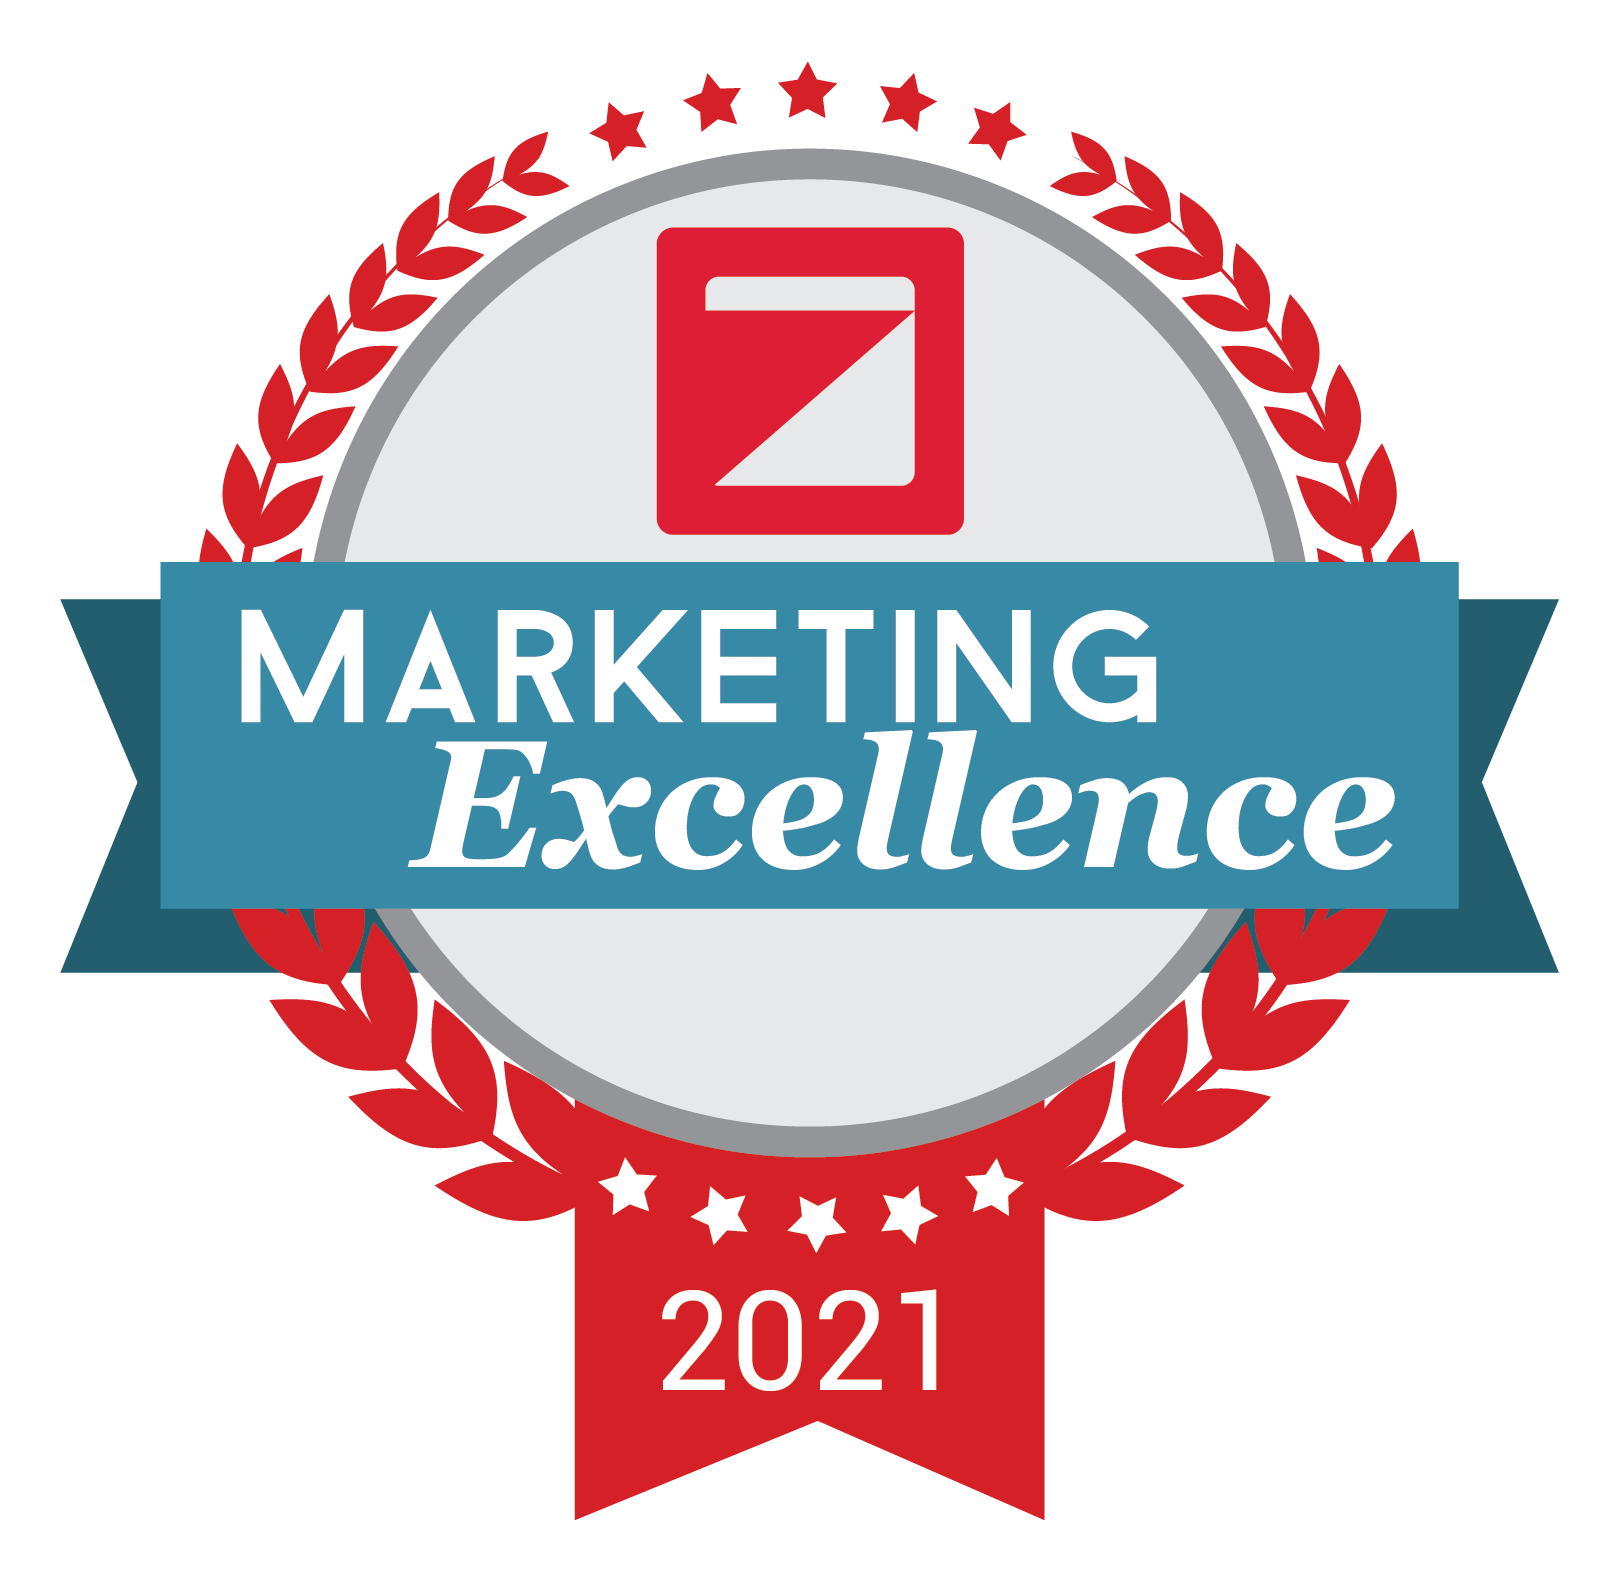 2021 Marketing Excellence Awards Winners Announced cover image